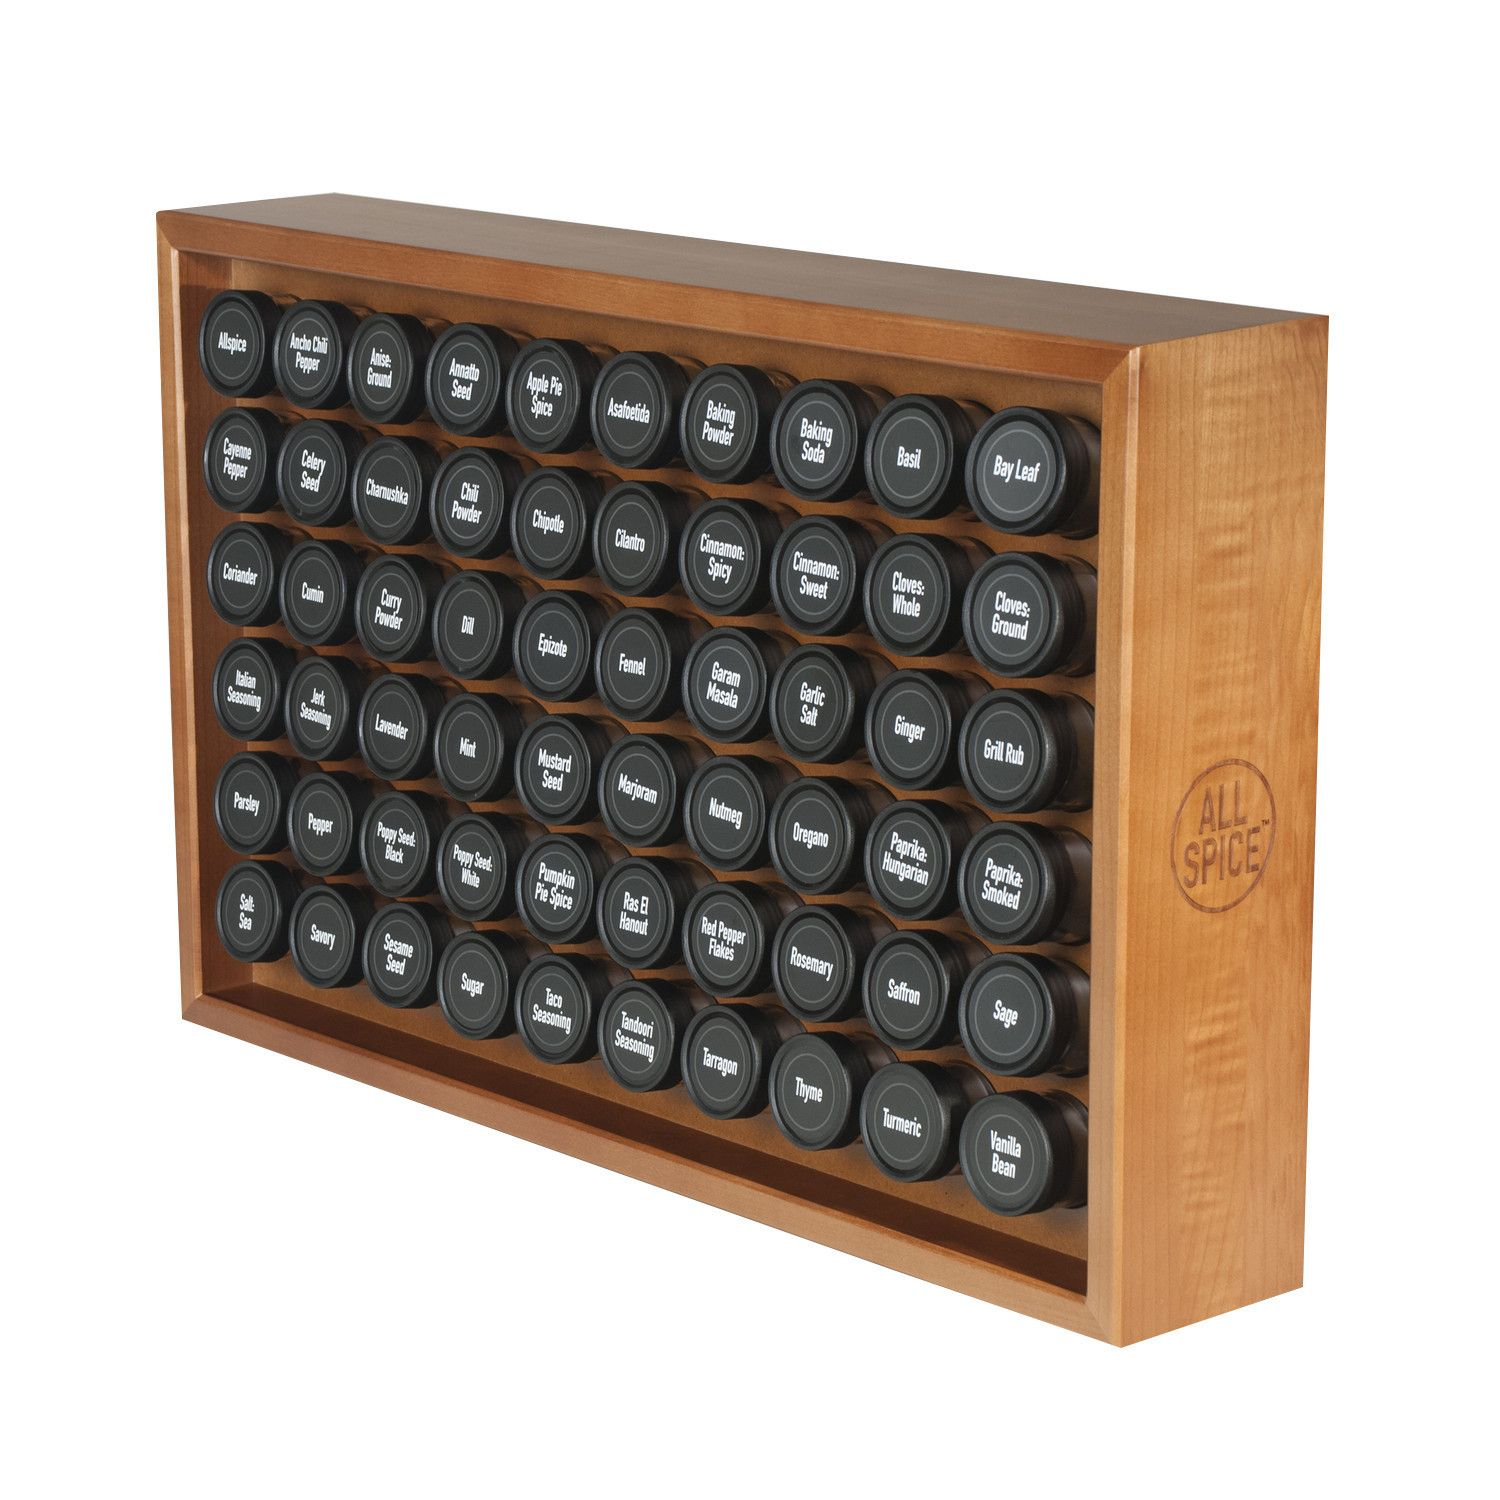 Dean And Deluca Spice Rack Pleasing 60 Jar Spice Rack  Jar Organizations And Organizing Decorating Design